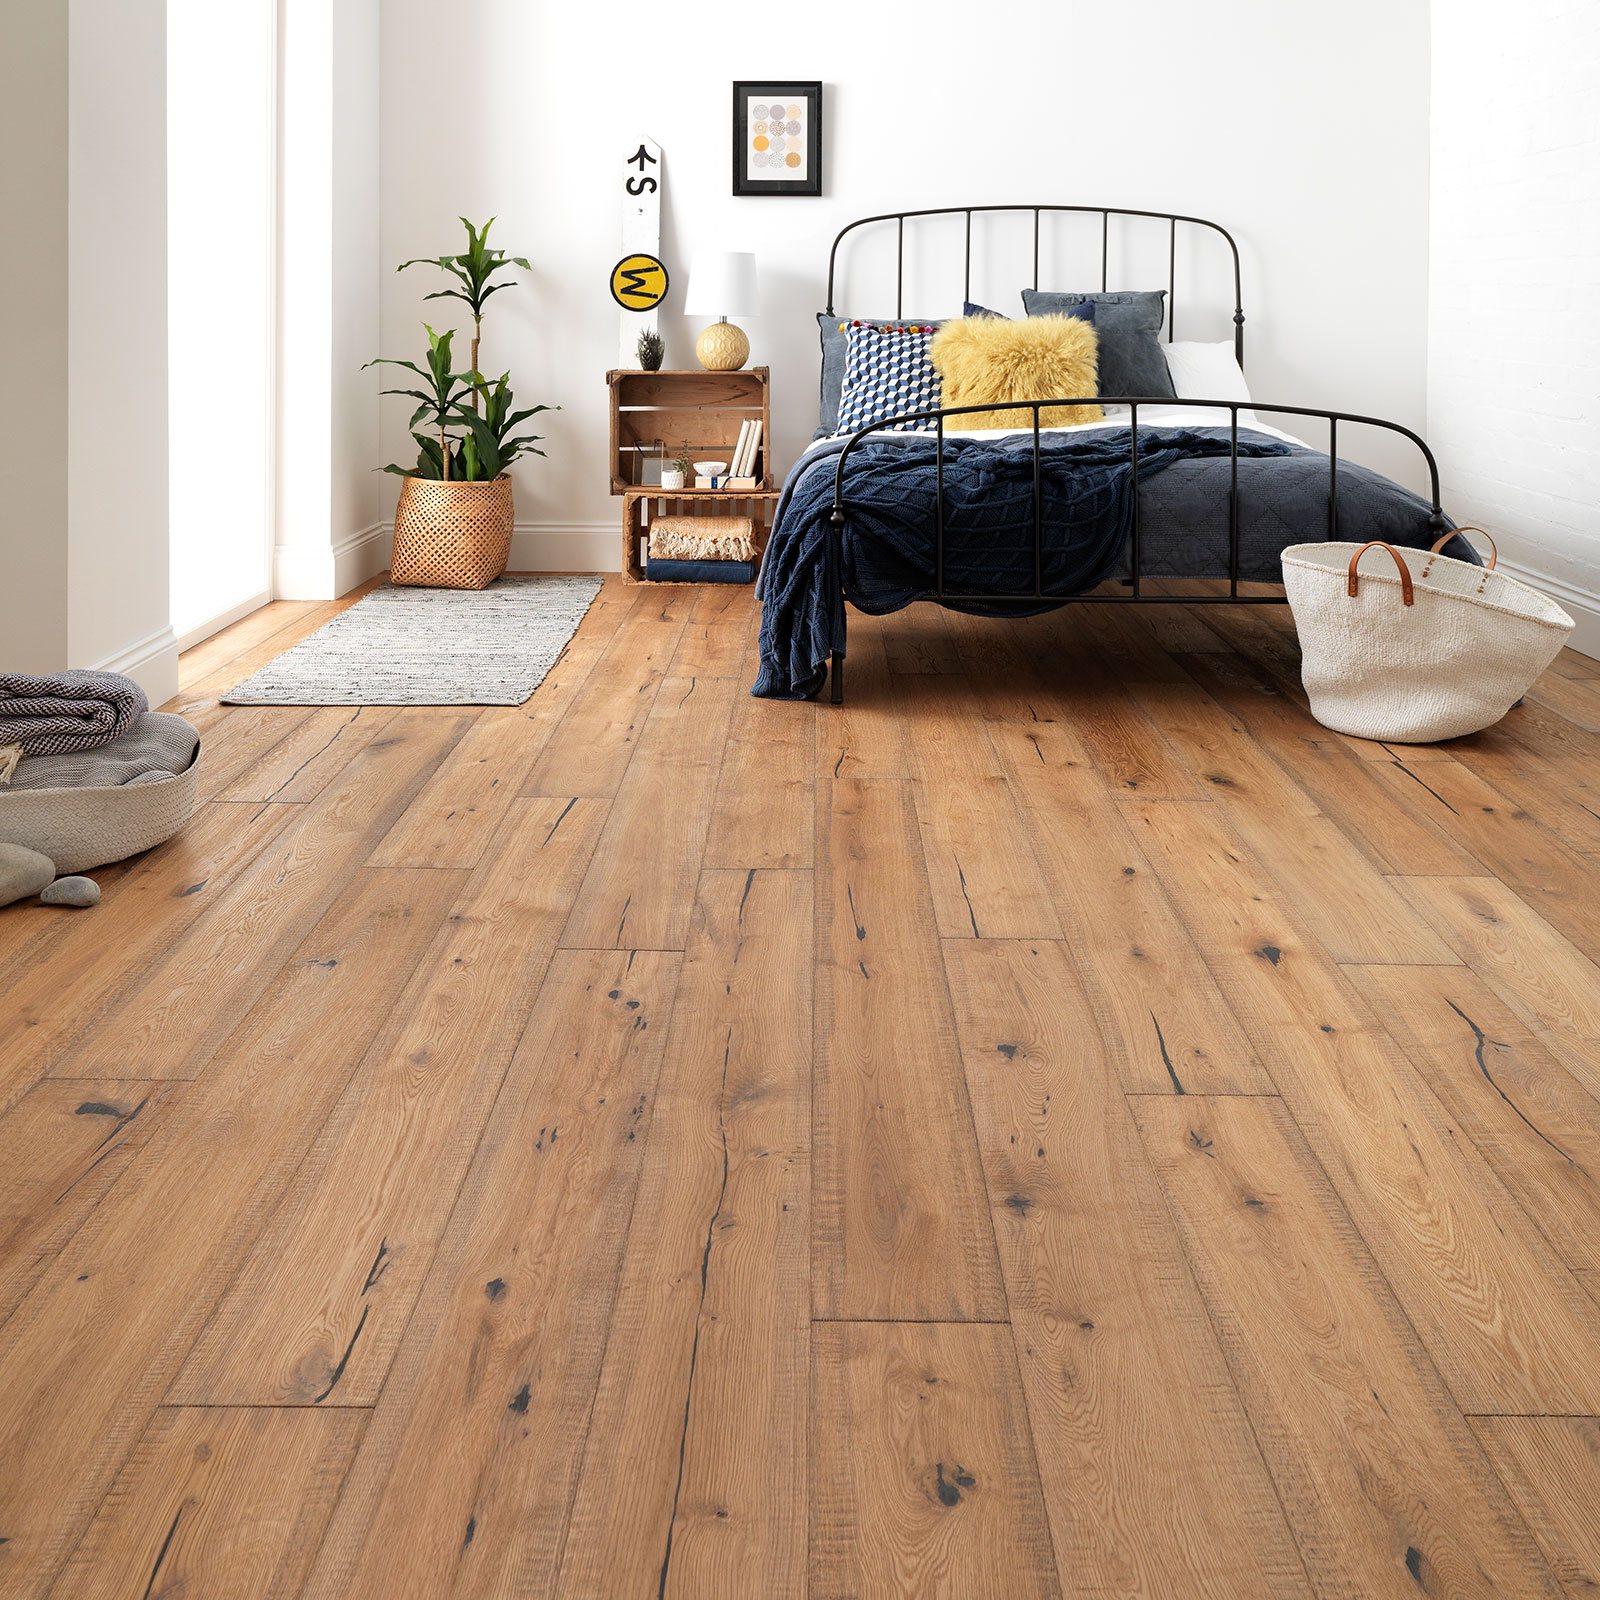 8 Reasons To Choose Woodpecker Woodpecker Flooring